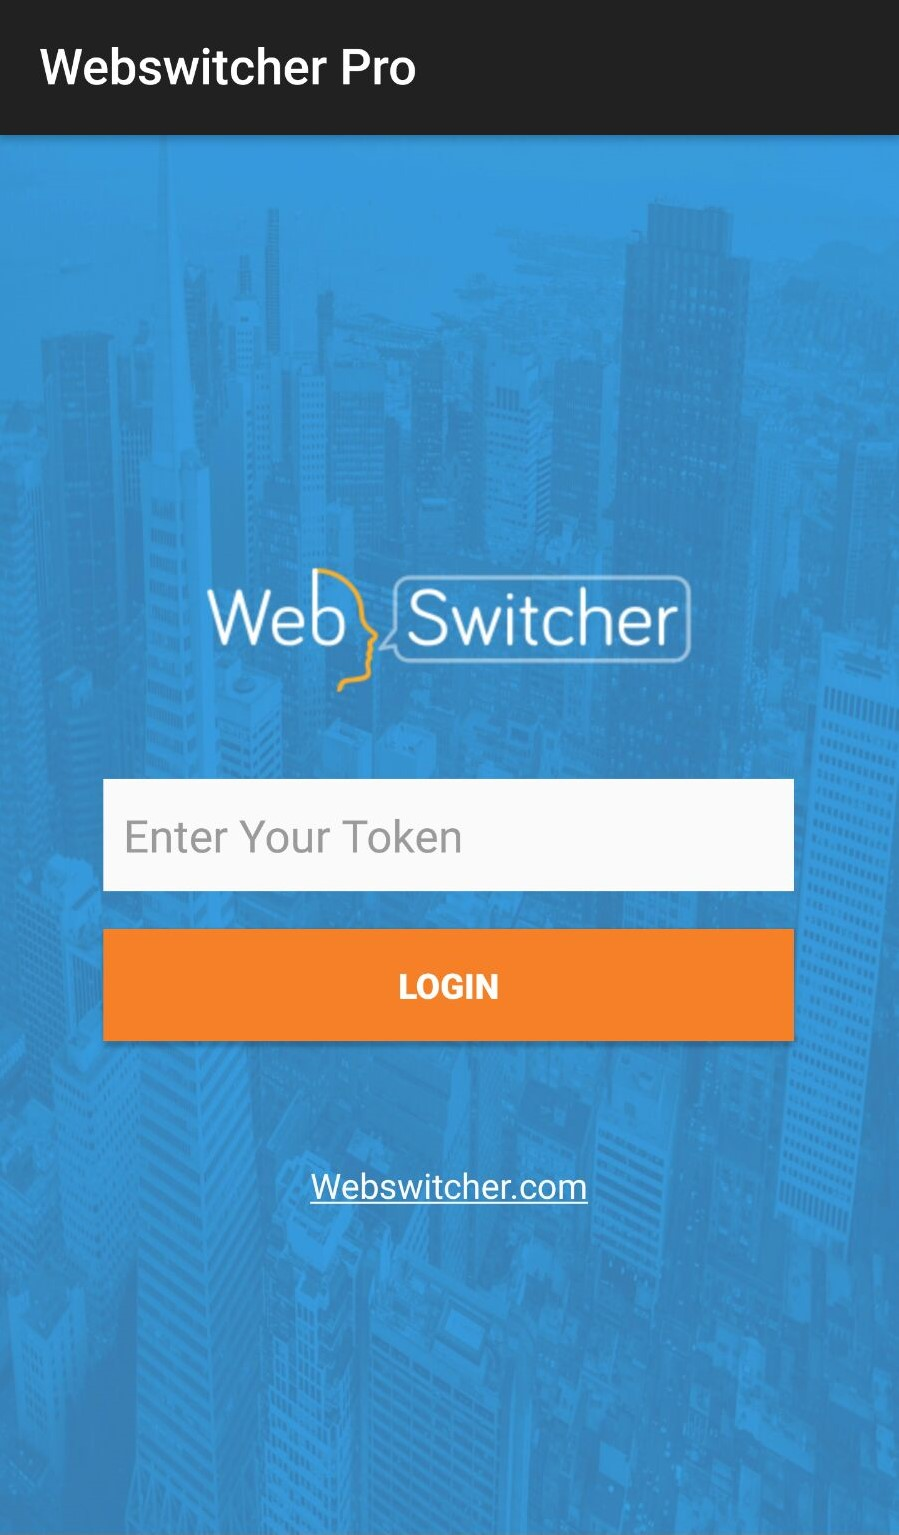 webswitcher-application.jpg